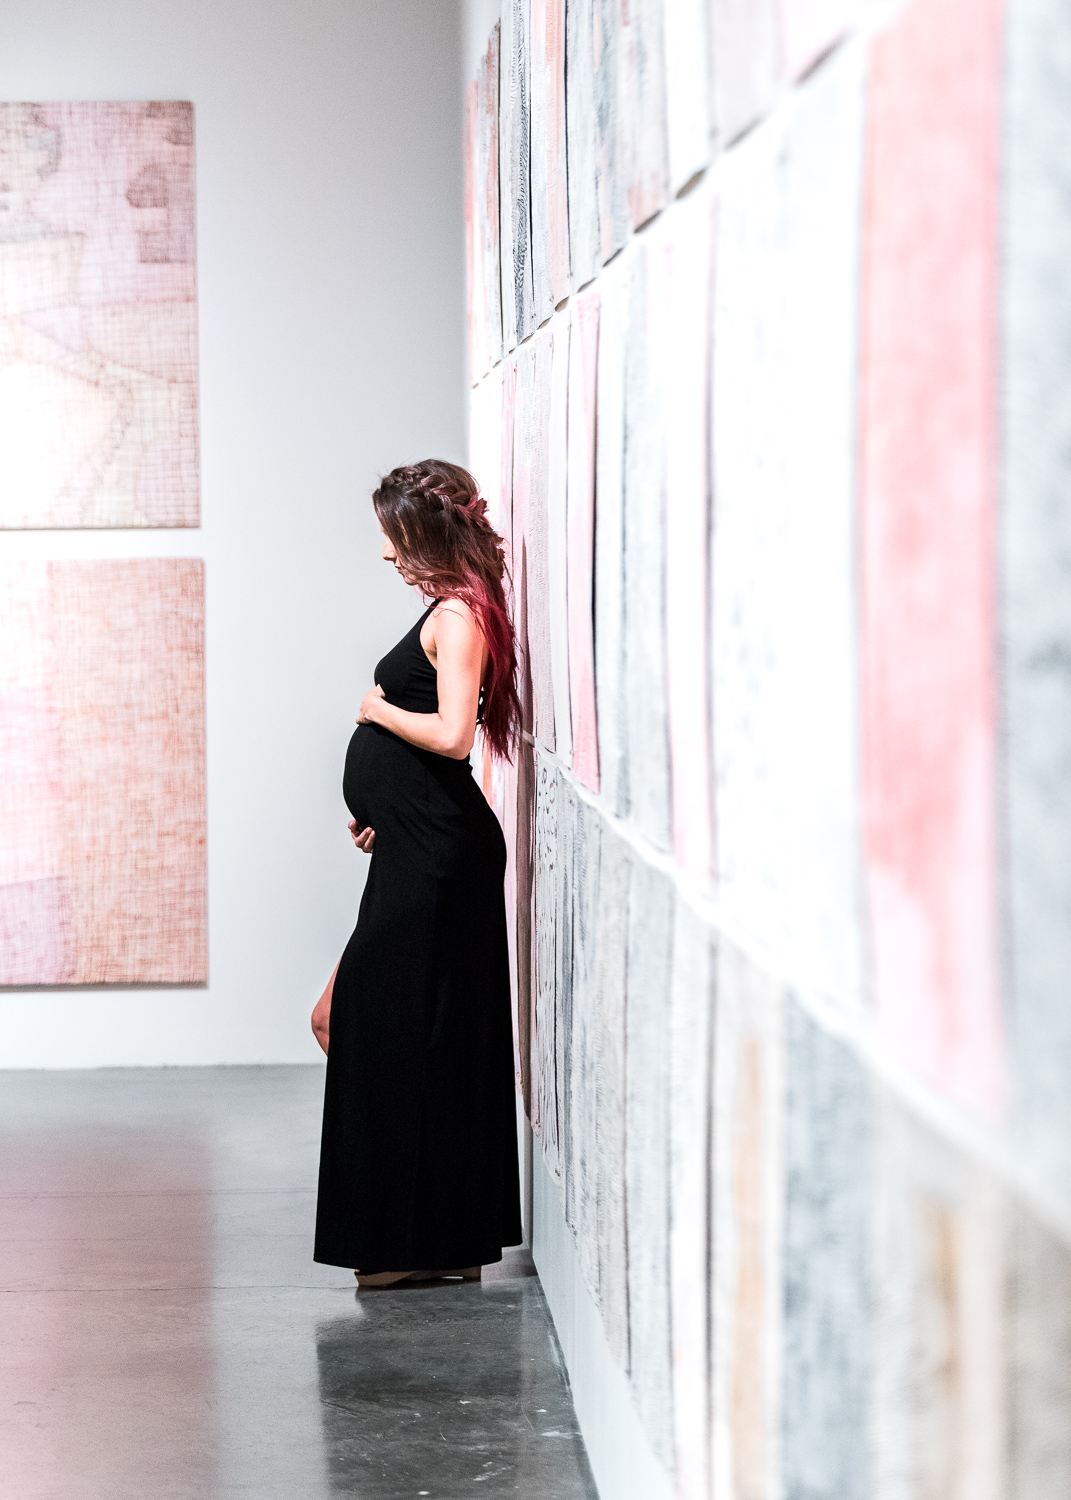 MelissaMaternity_3_KelliPricePhotography_NVMuseumArt_March2018.jpg